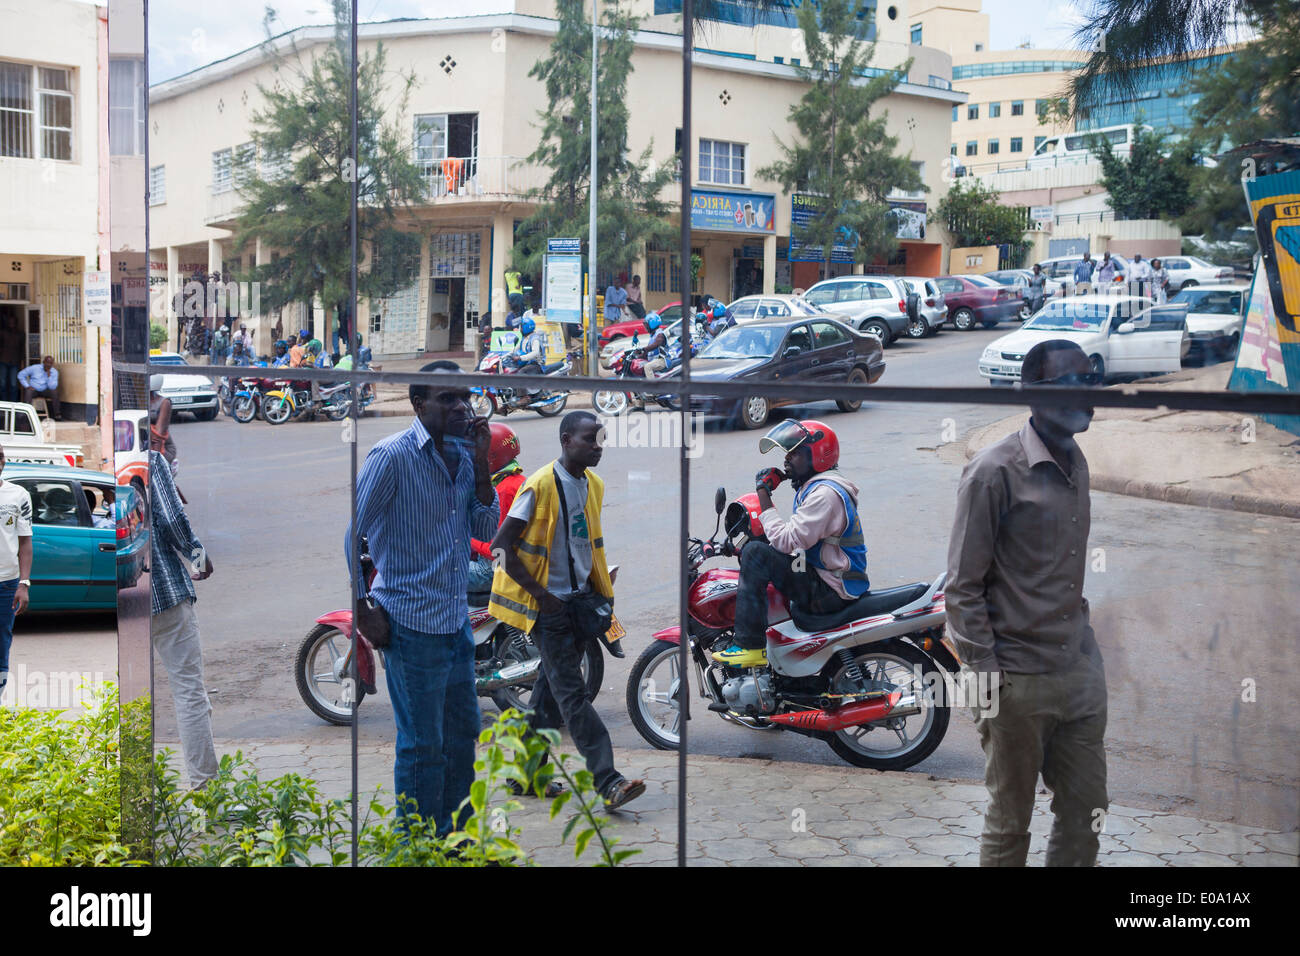 Street scene in downtown Kigali reflected on modern building, Rwanda. - Stock Image